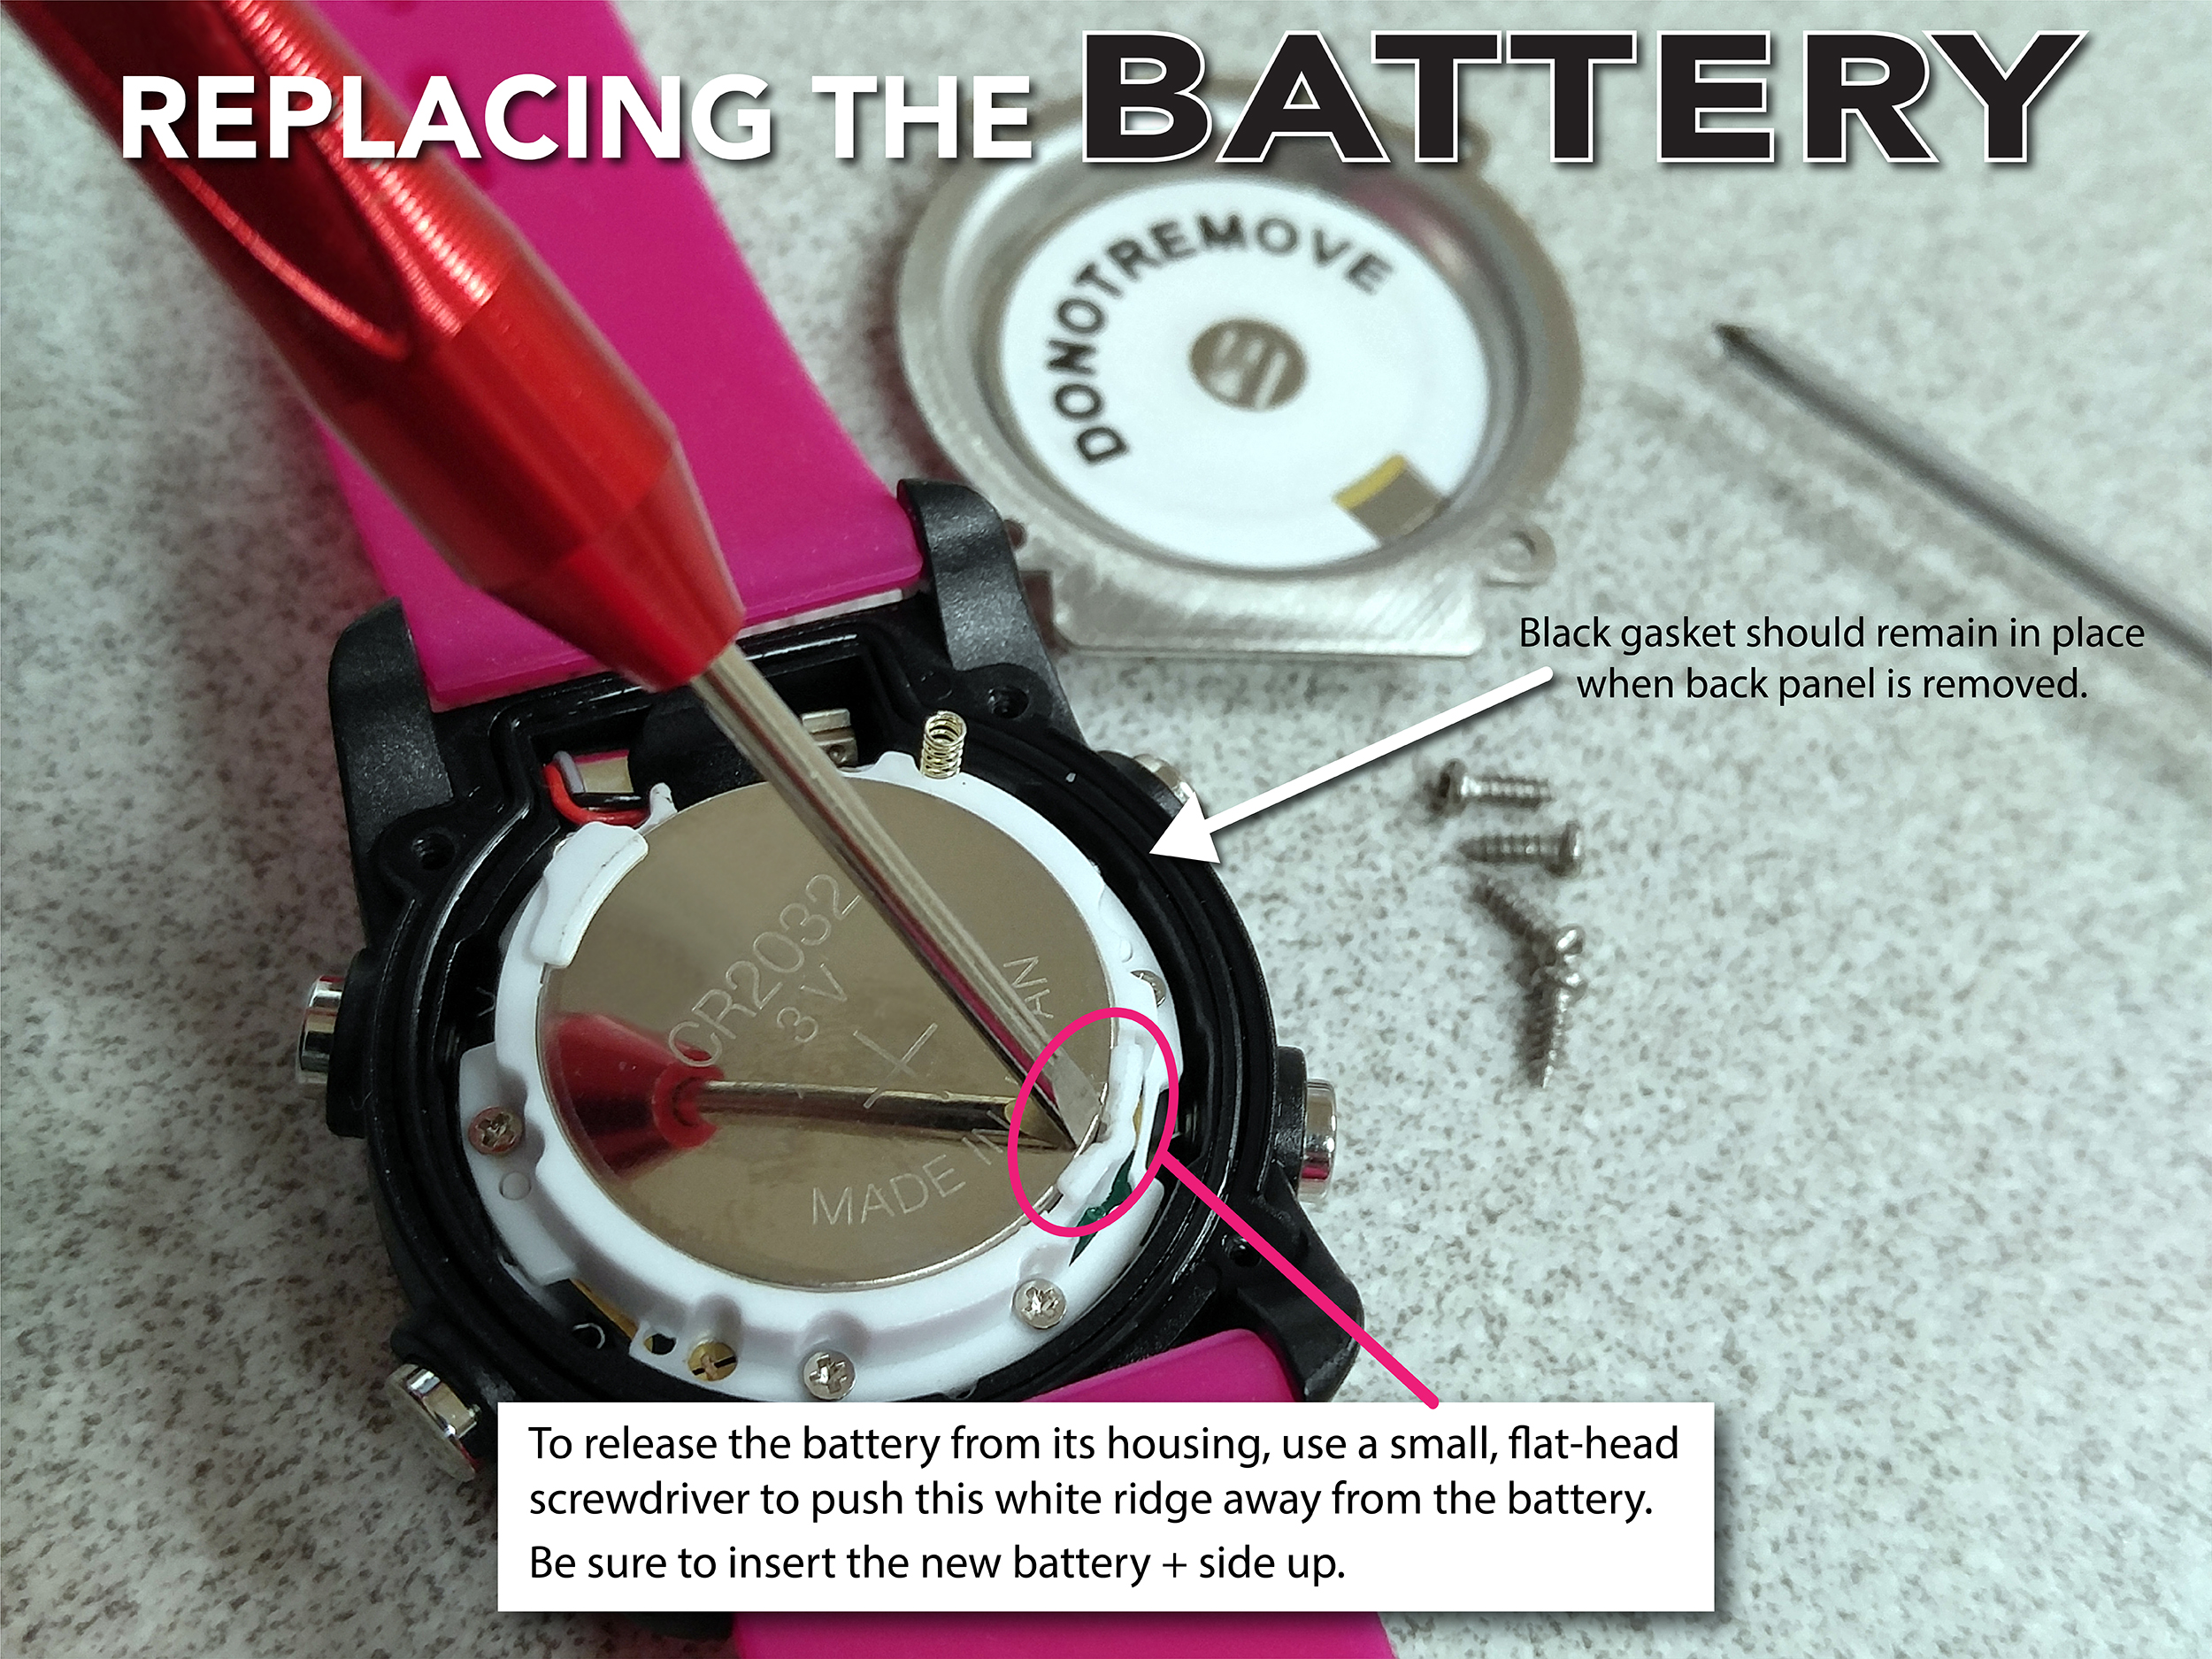 updated-battery-replacement-w-instructions-01.jpg